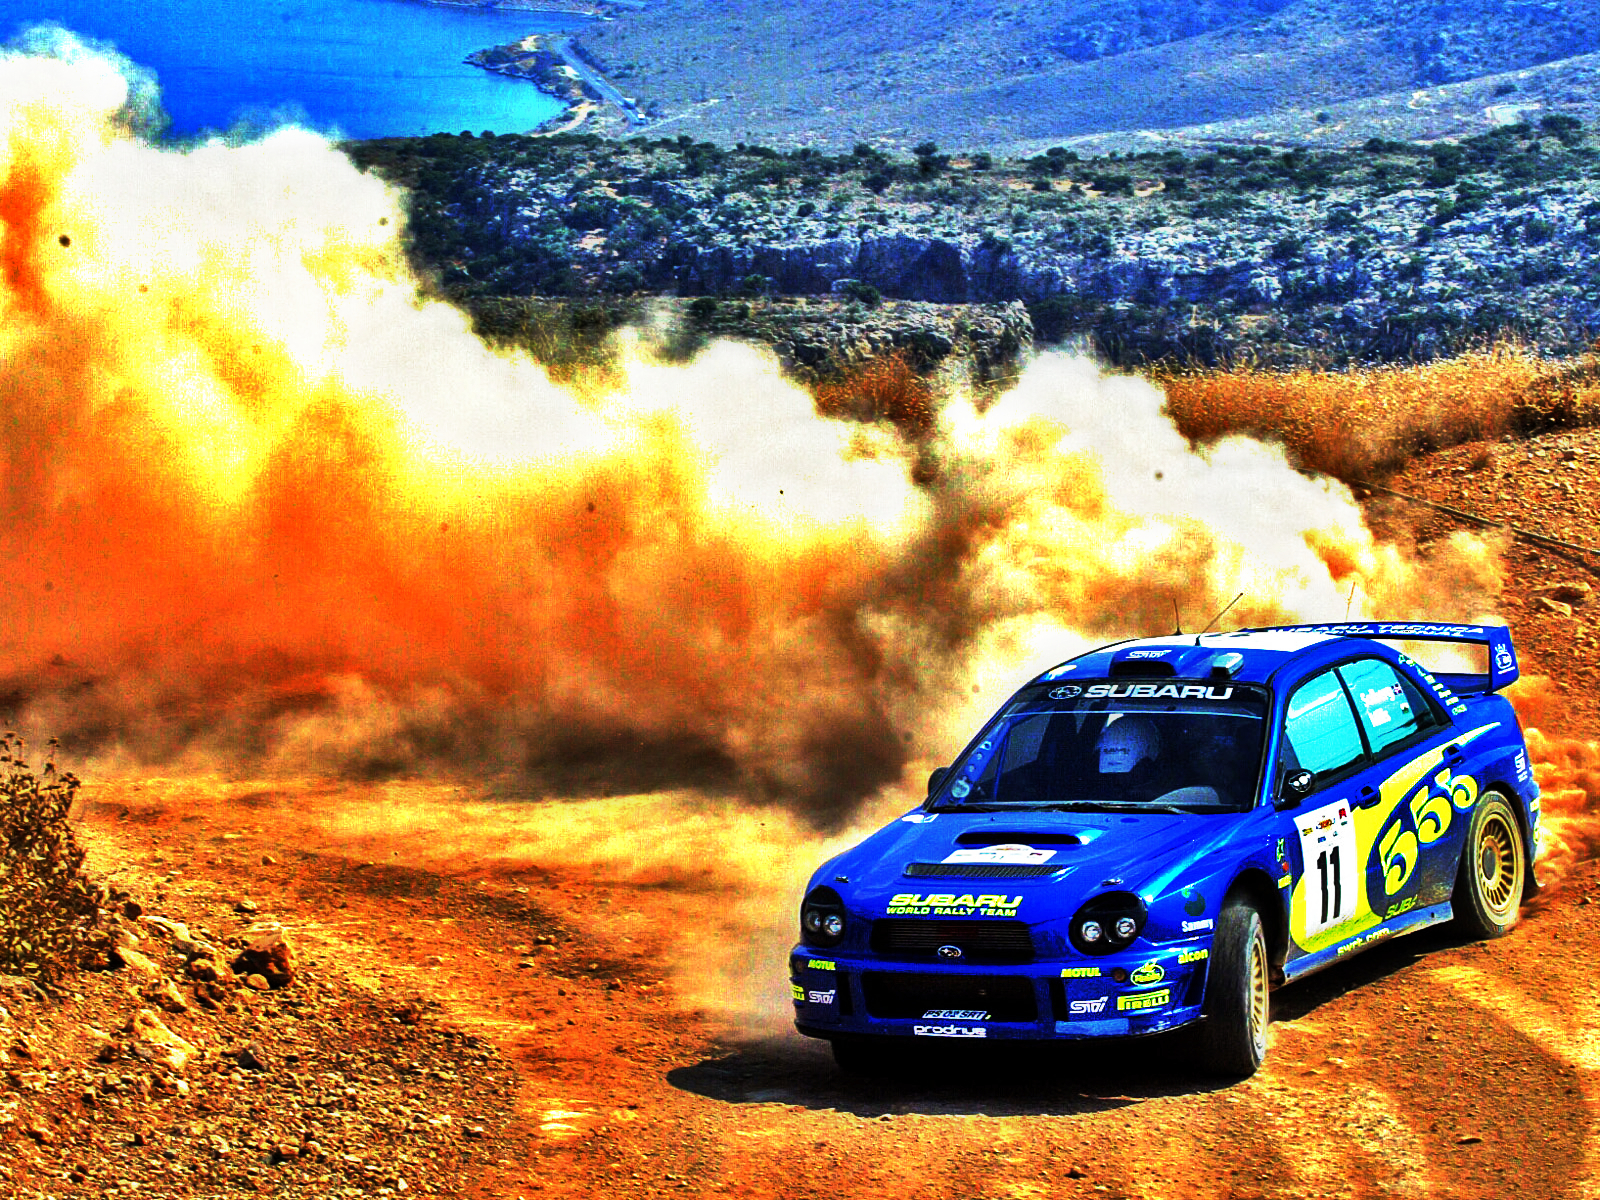 cars rally Subaru Impreza